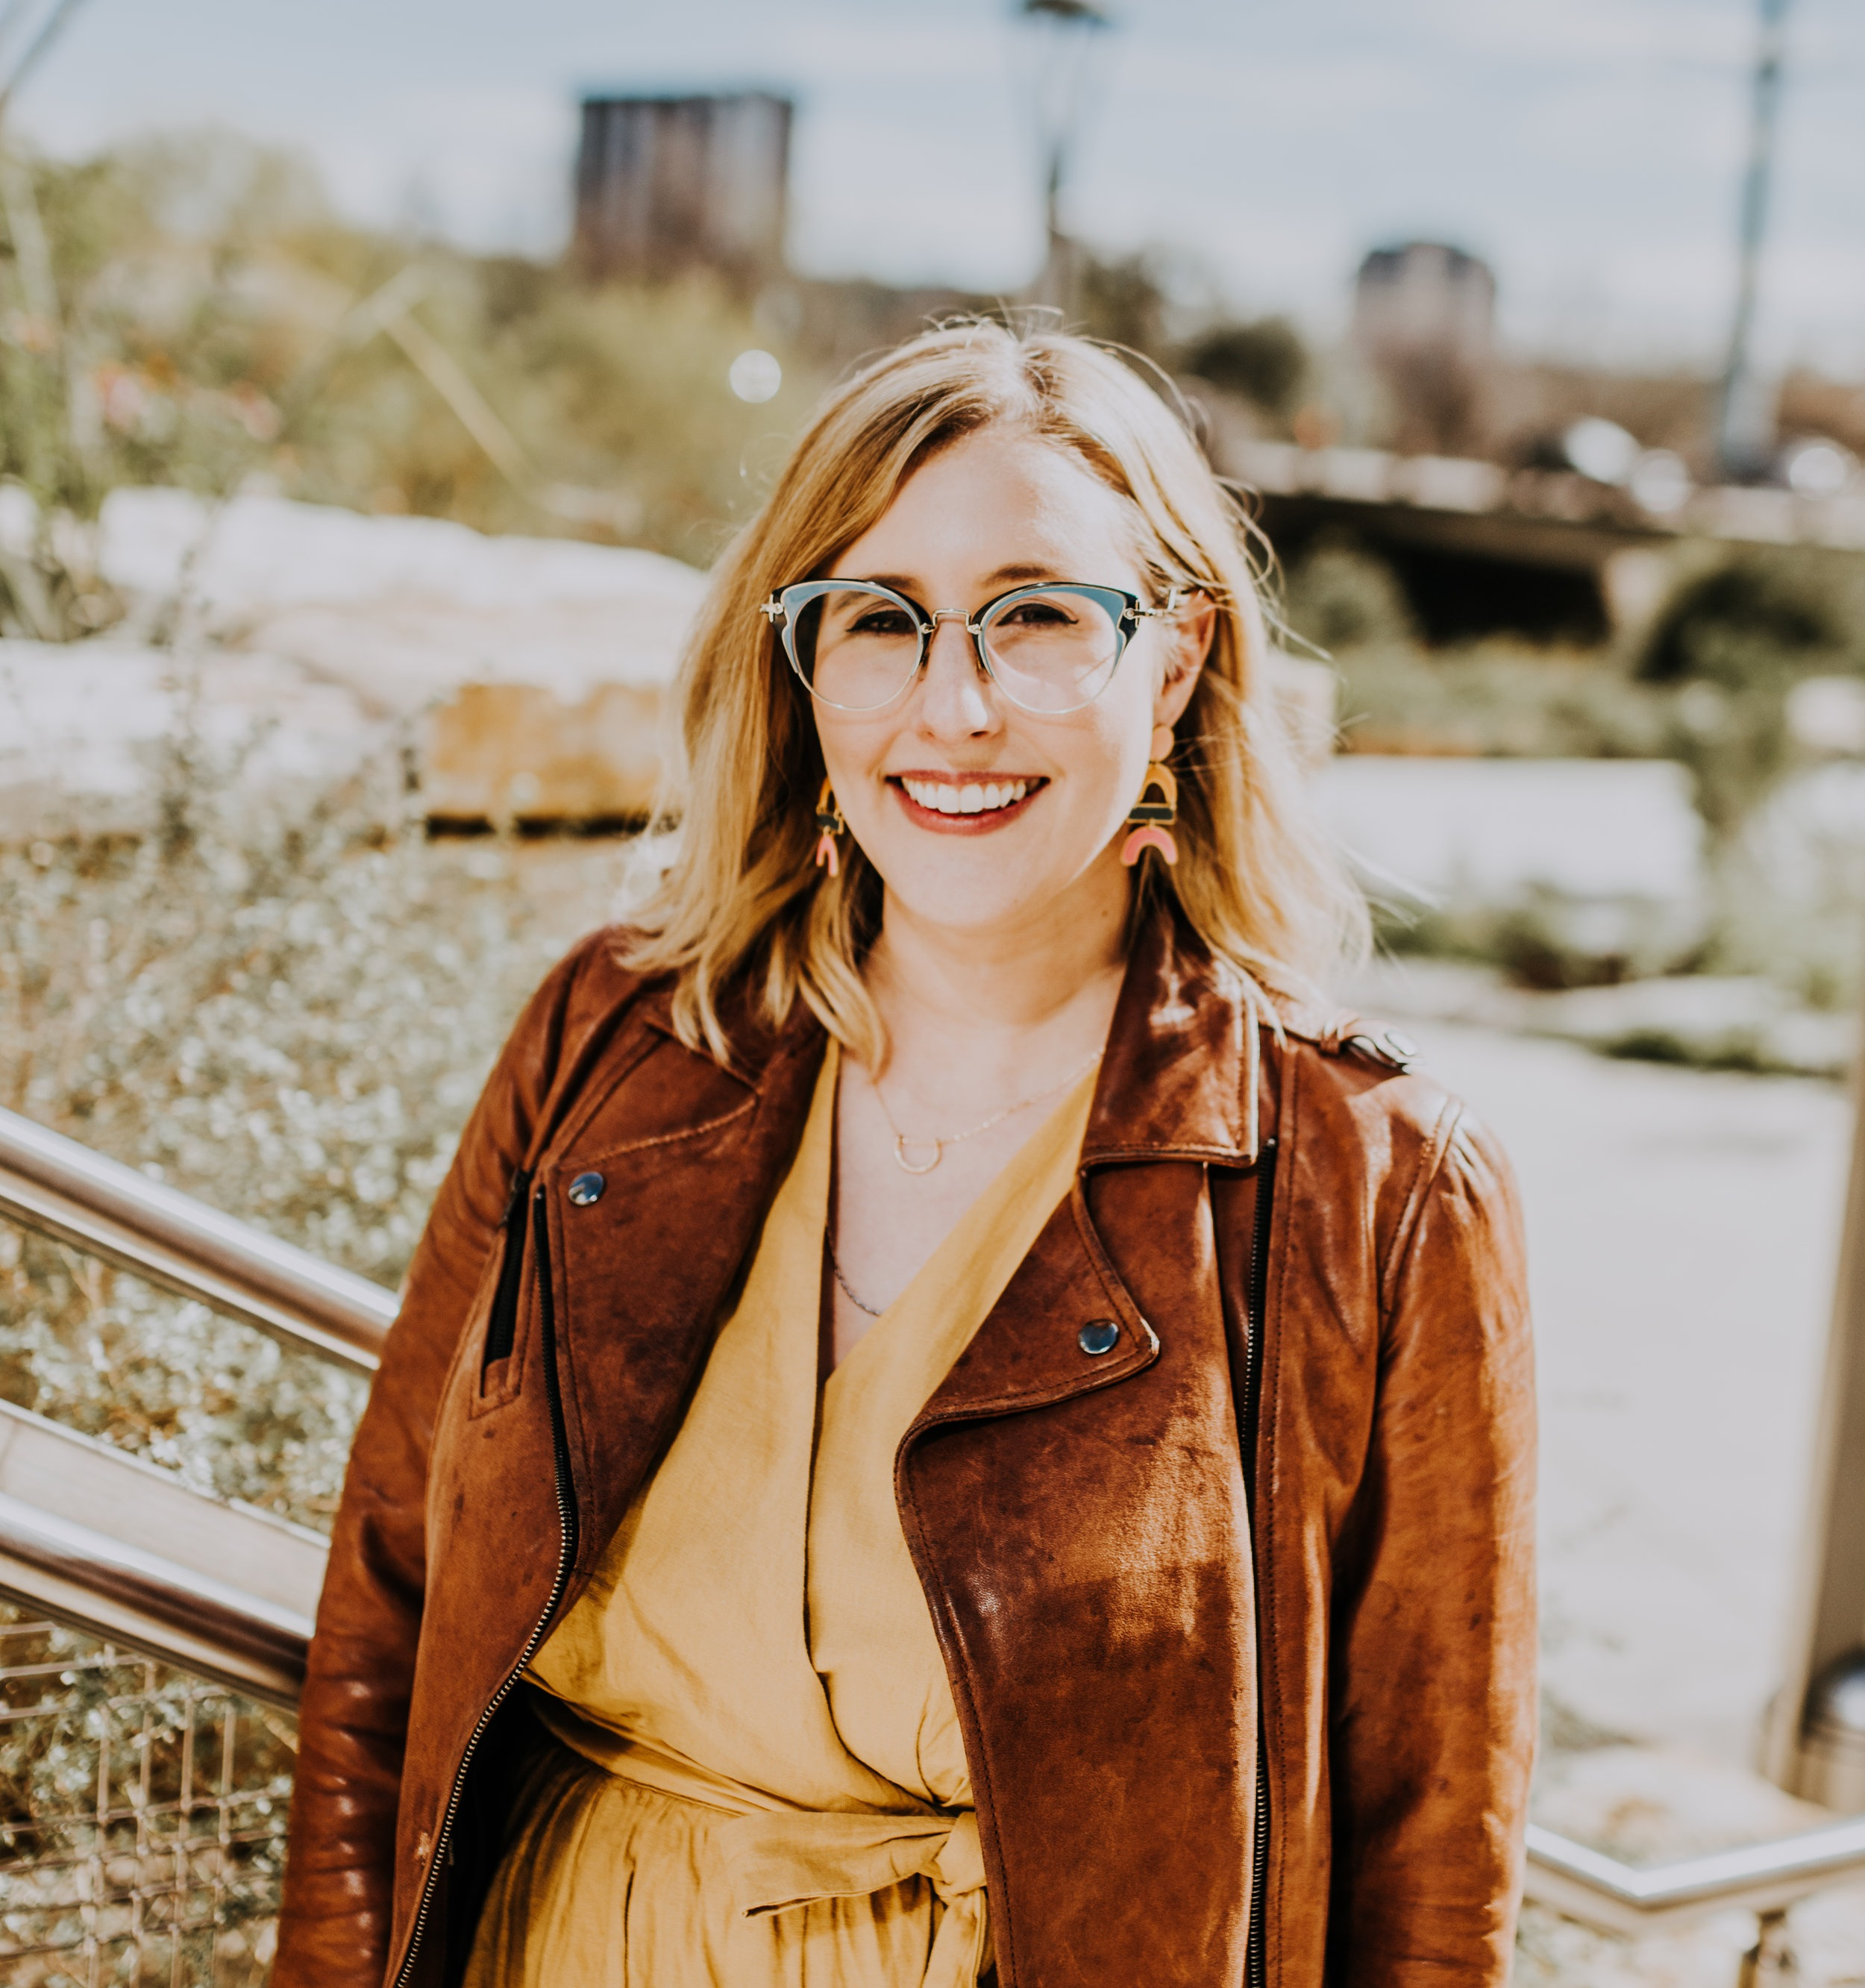 Ilyse Kennedy, MA, LPC-Intern, LMFT-Associate    Supervised by Sunny Lansdale, PhD, LPC-S and Brianne Blevins, LPC-S, LMFT-S    Find me at    Treaty Oak Psychotherapy   , a group practice located in Westlake.